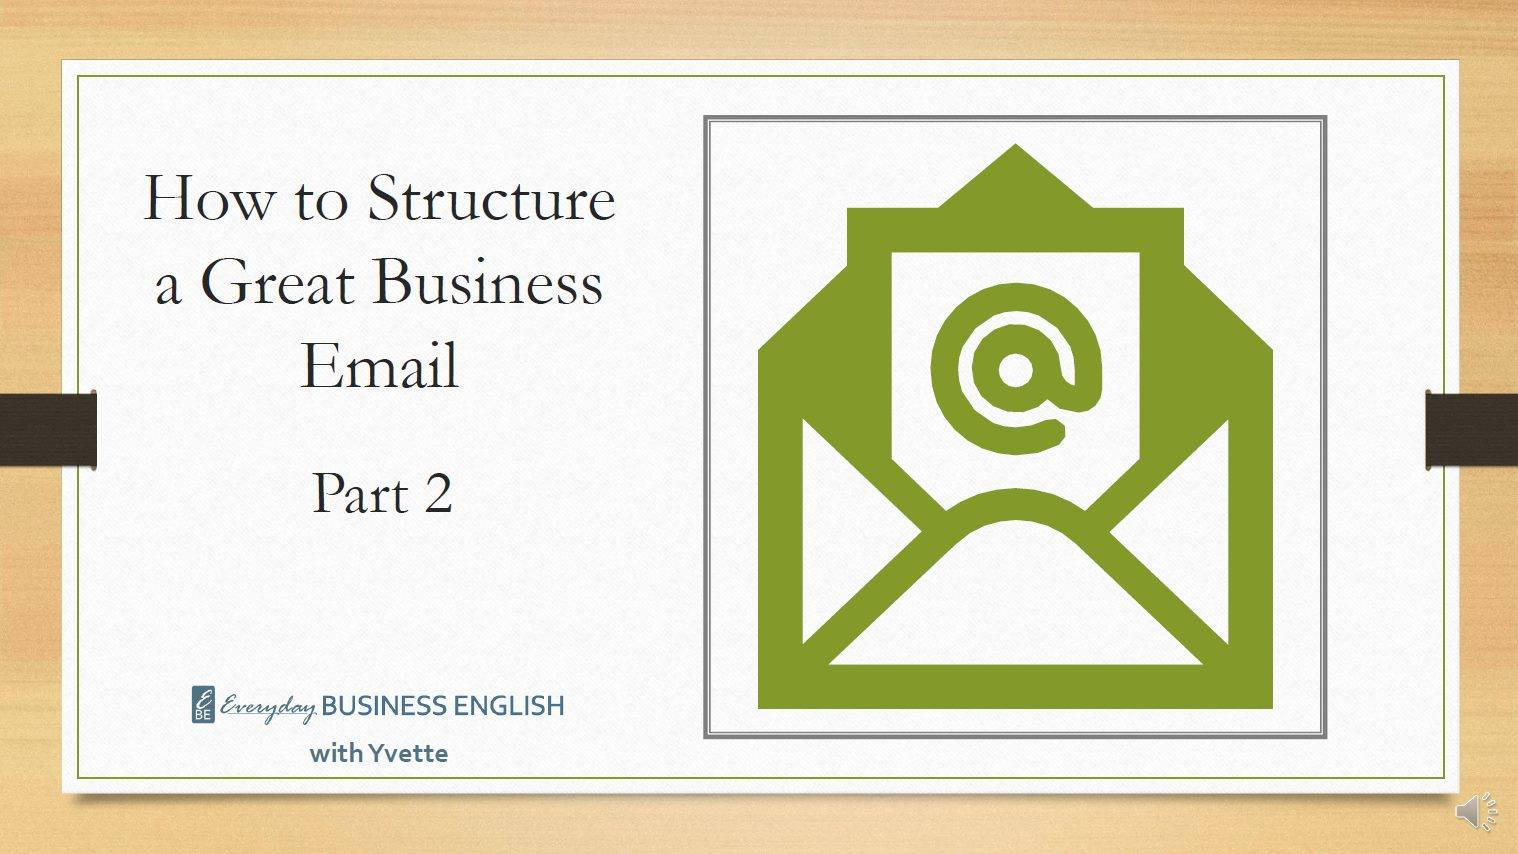 How to Structure a Great Business Email - Opening Statement